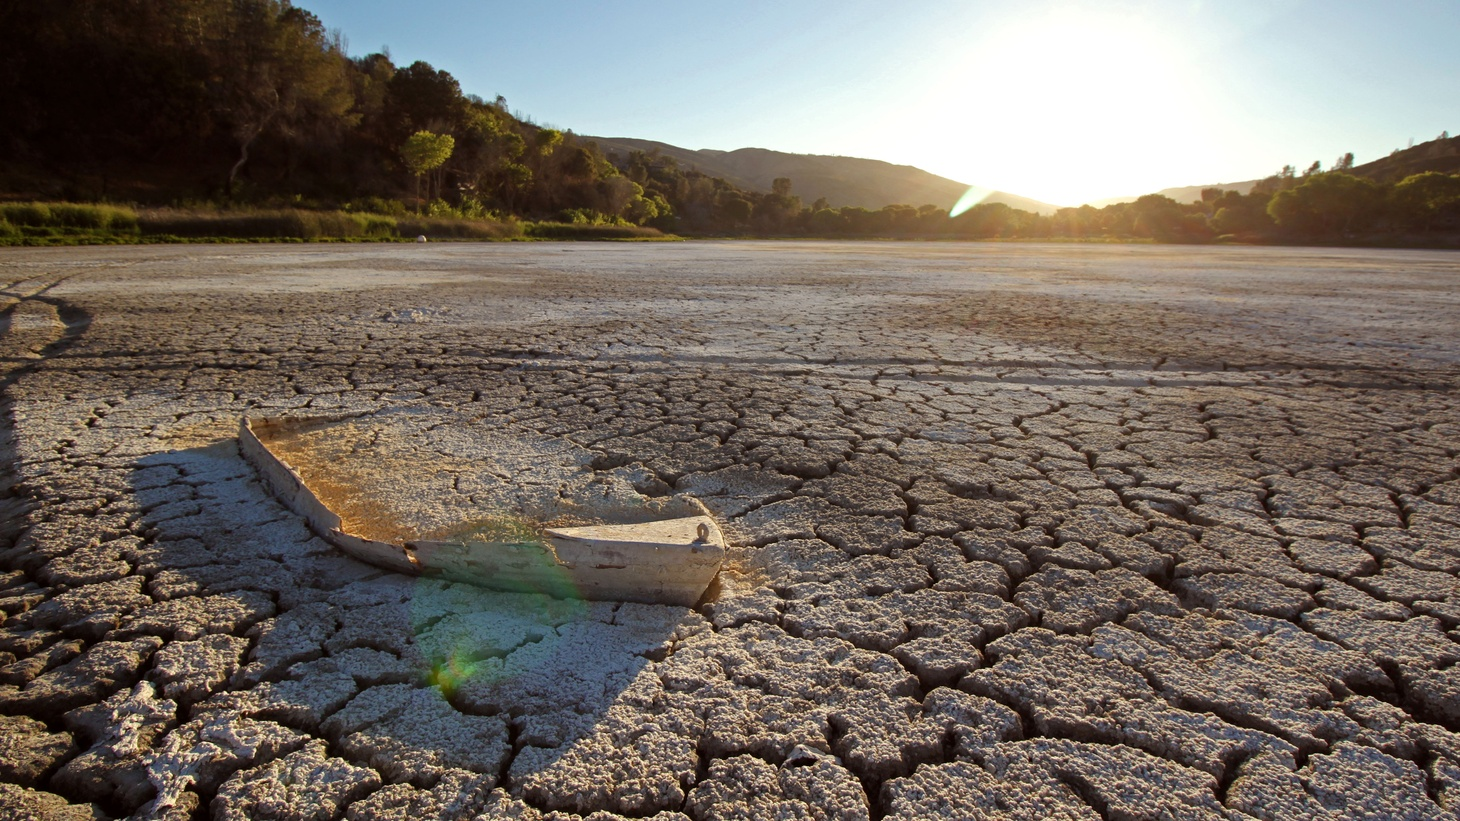 Another drought is on the horizon for California. But after years of conversation efforts, Southern California might be able to avoid water restrictions.